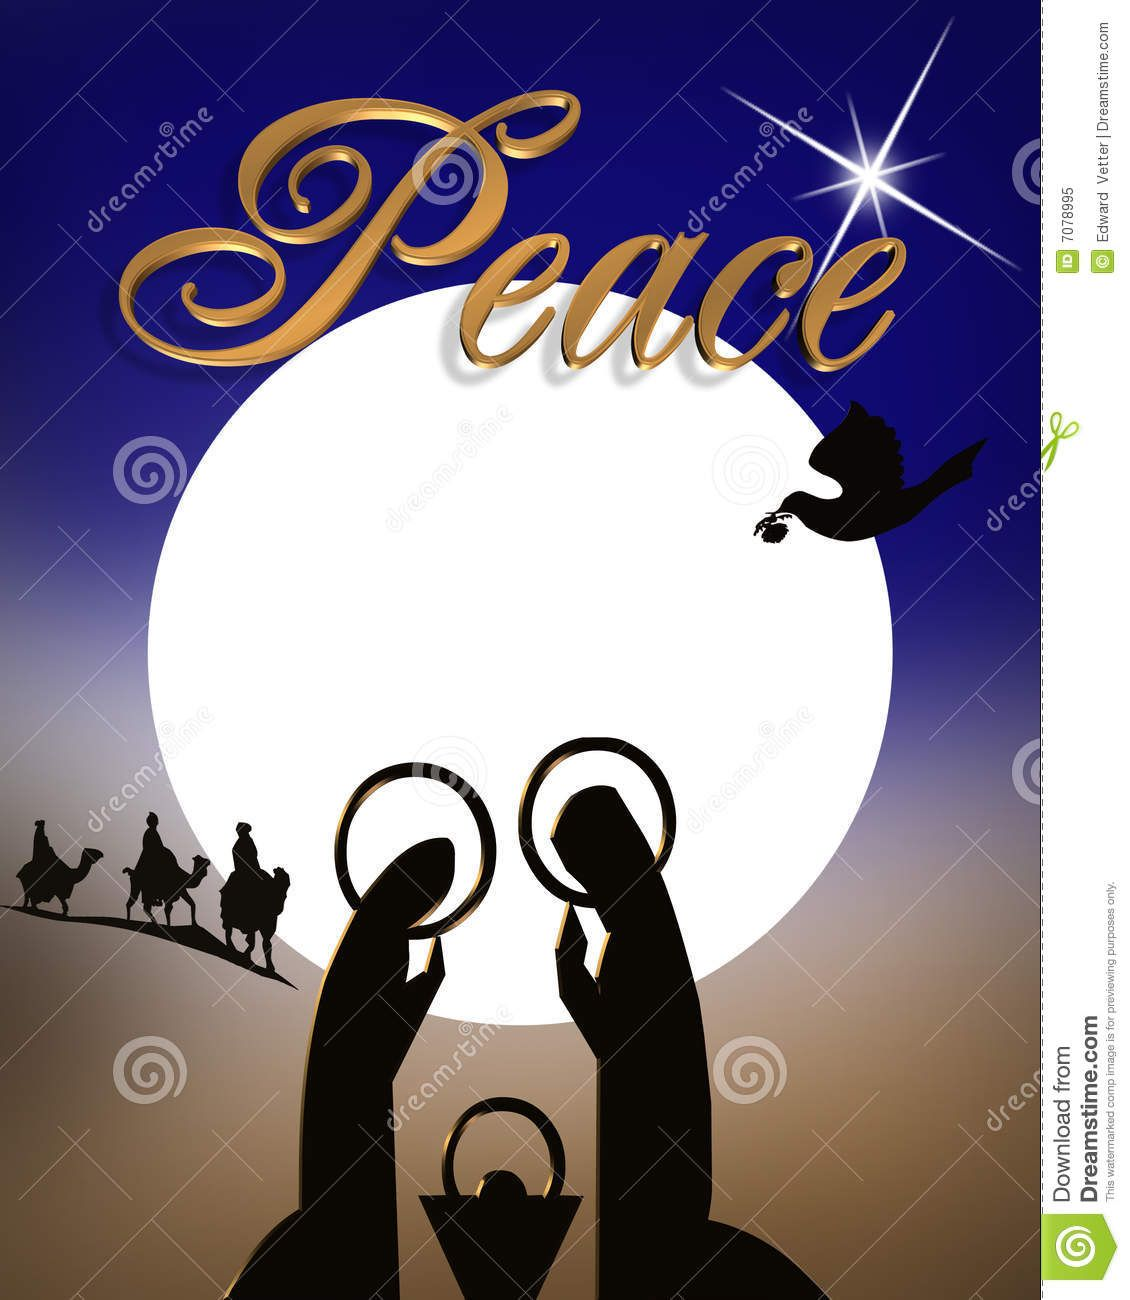 Christmas nativity religious abstract royalty free stock photo image christmas nativity religious abstract royalty free stock photo image kristyandbryce Gallery